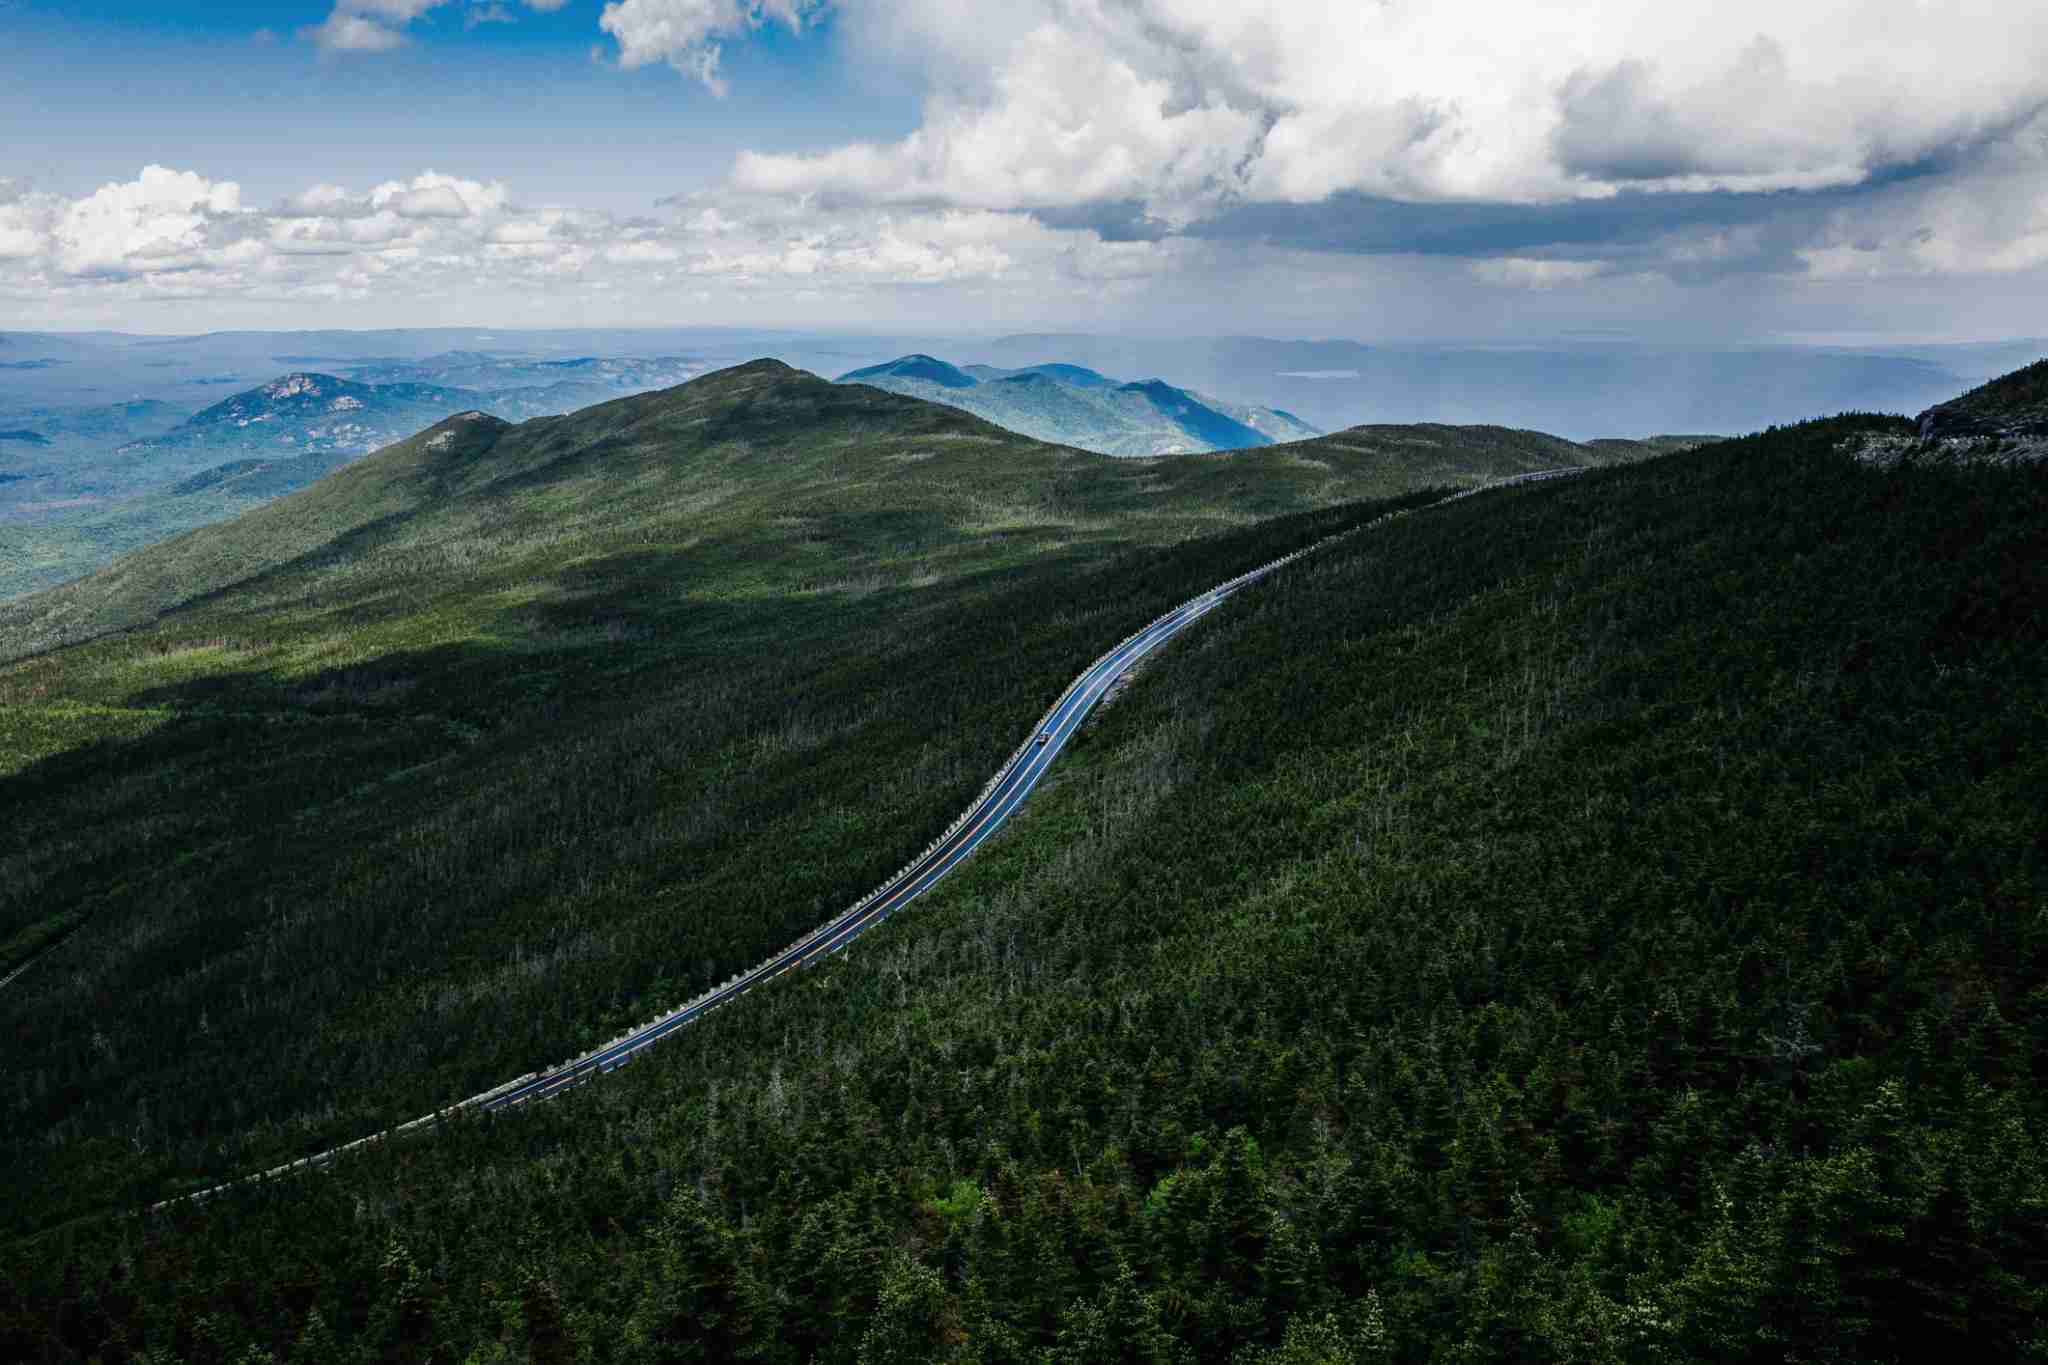 Mount Whiteface, Adirondack Mountains (Photo by Ryan Lebel Photography/Getty Images)